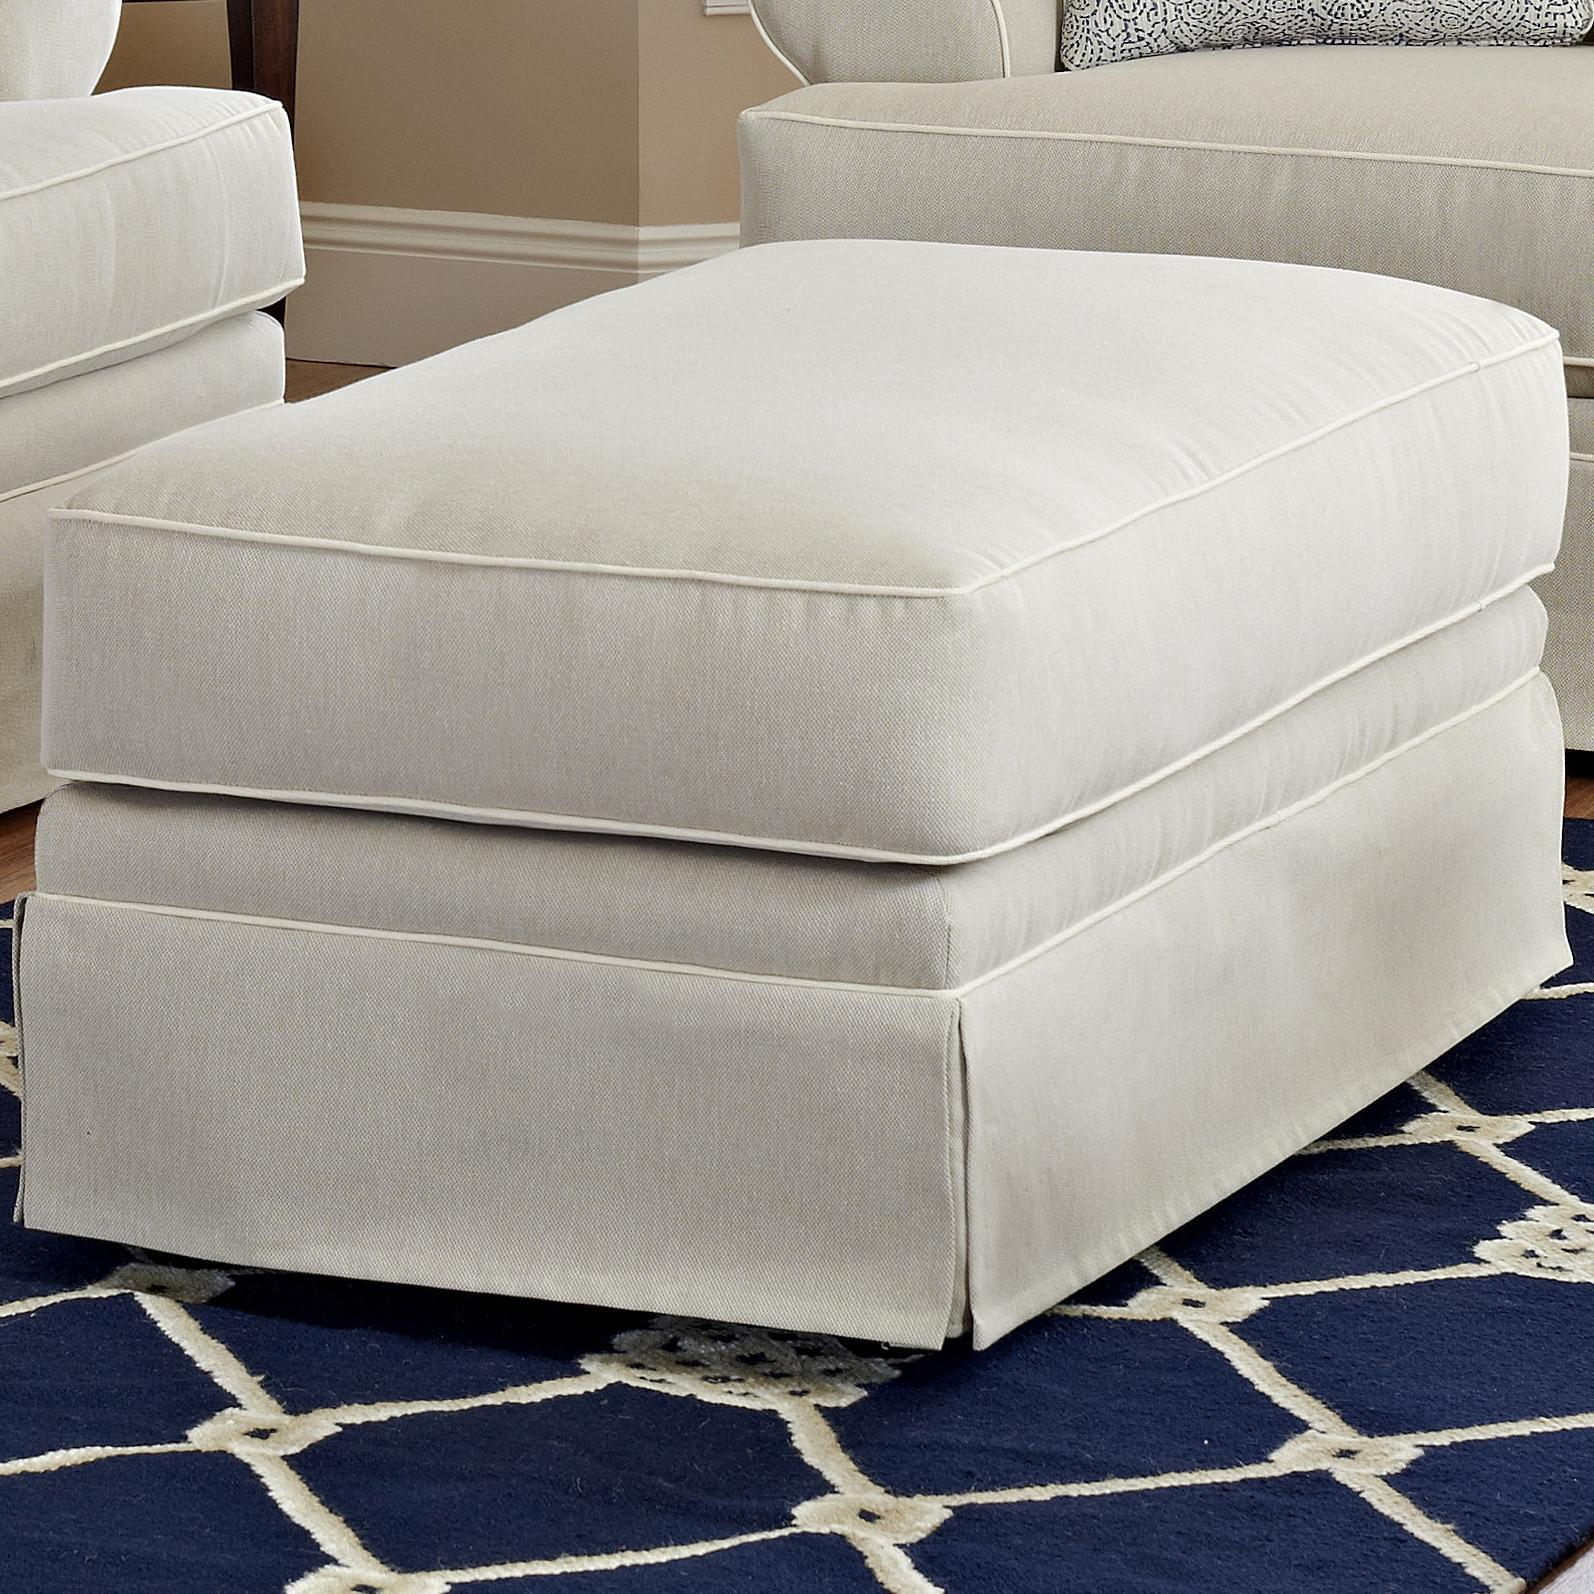 Ottoman with Welting Detail